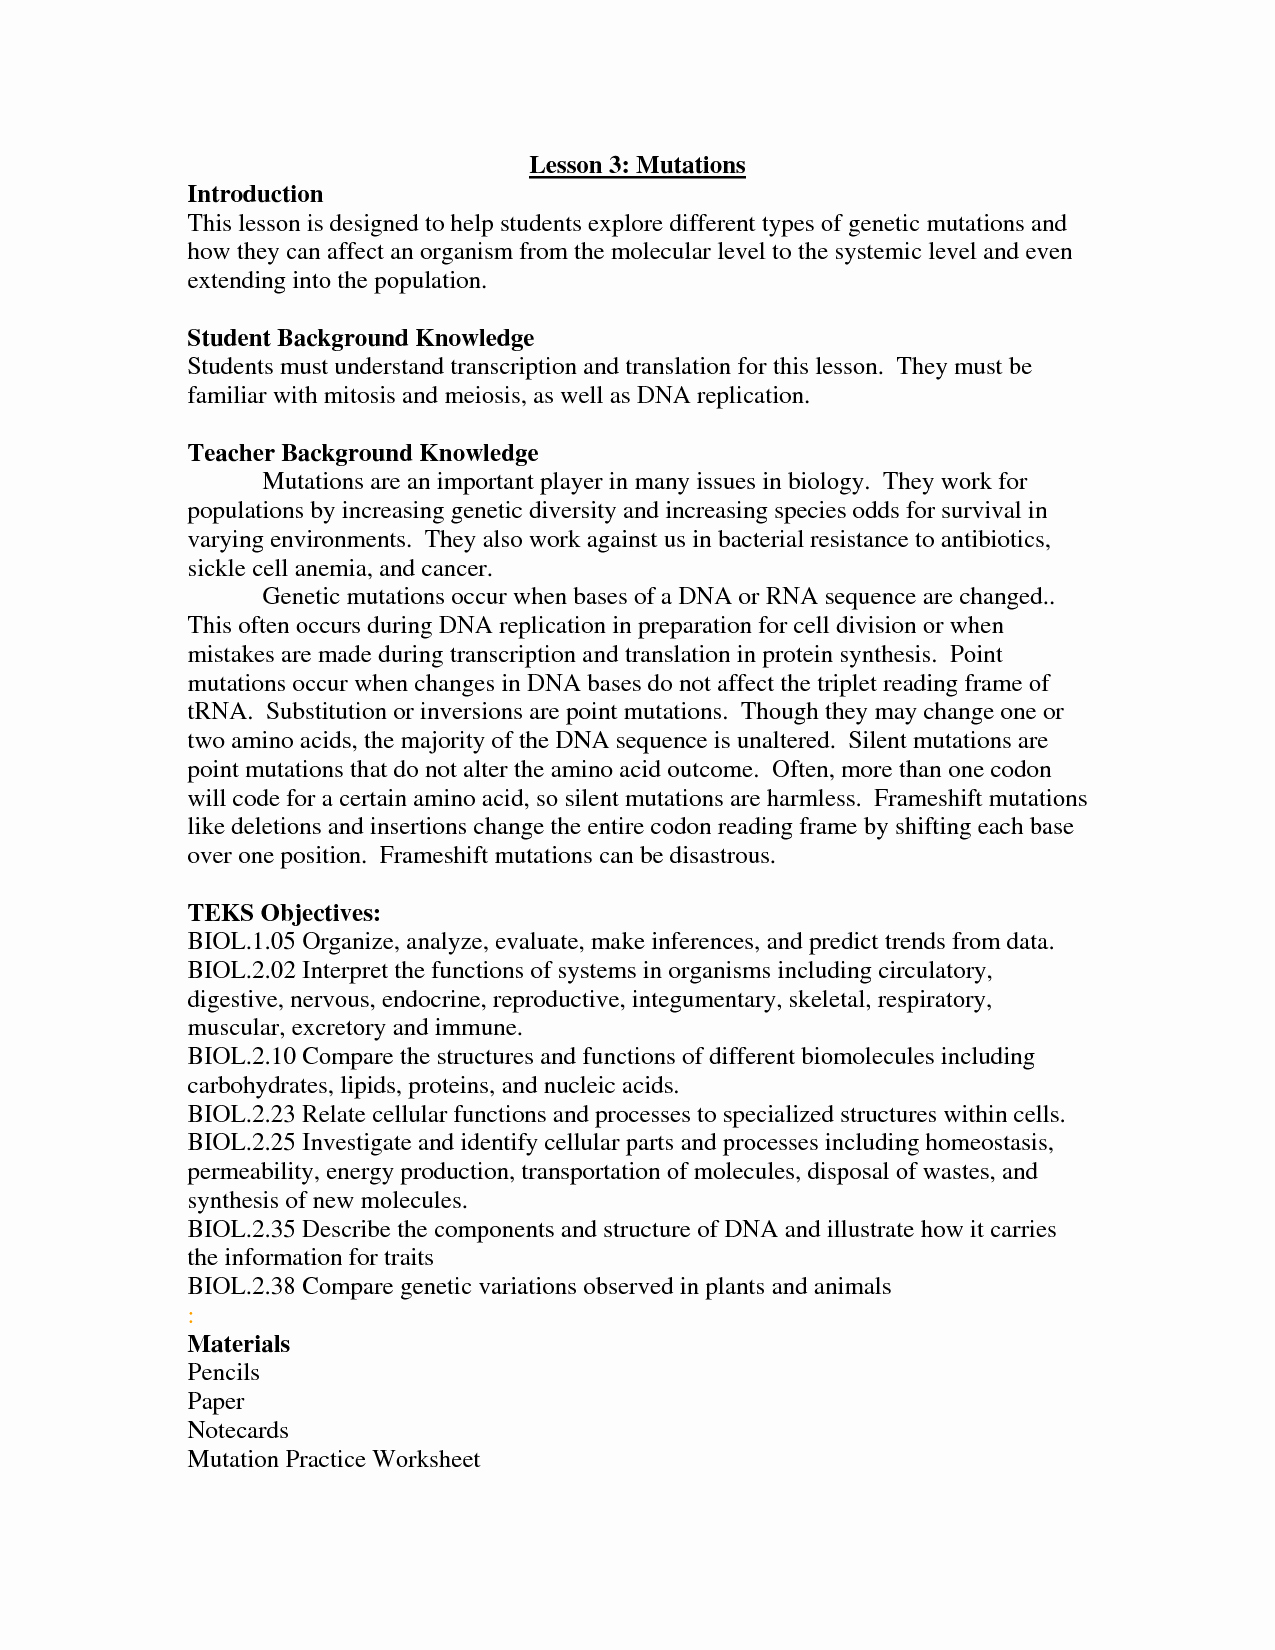 50 Dna Mutation Practice Worksheet Answers